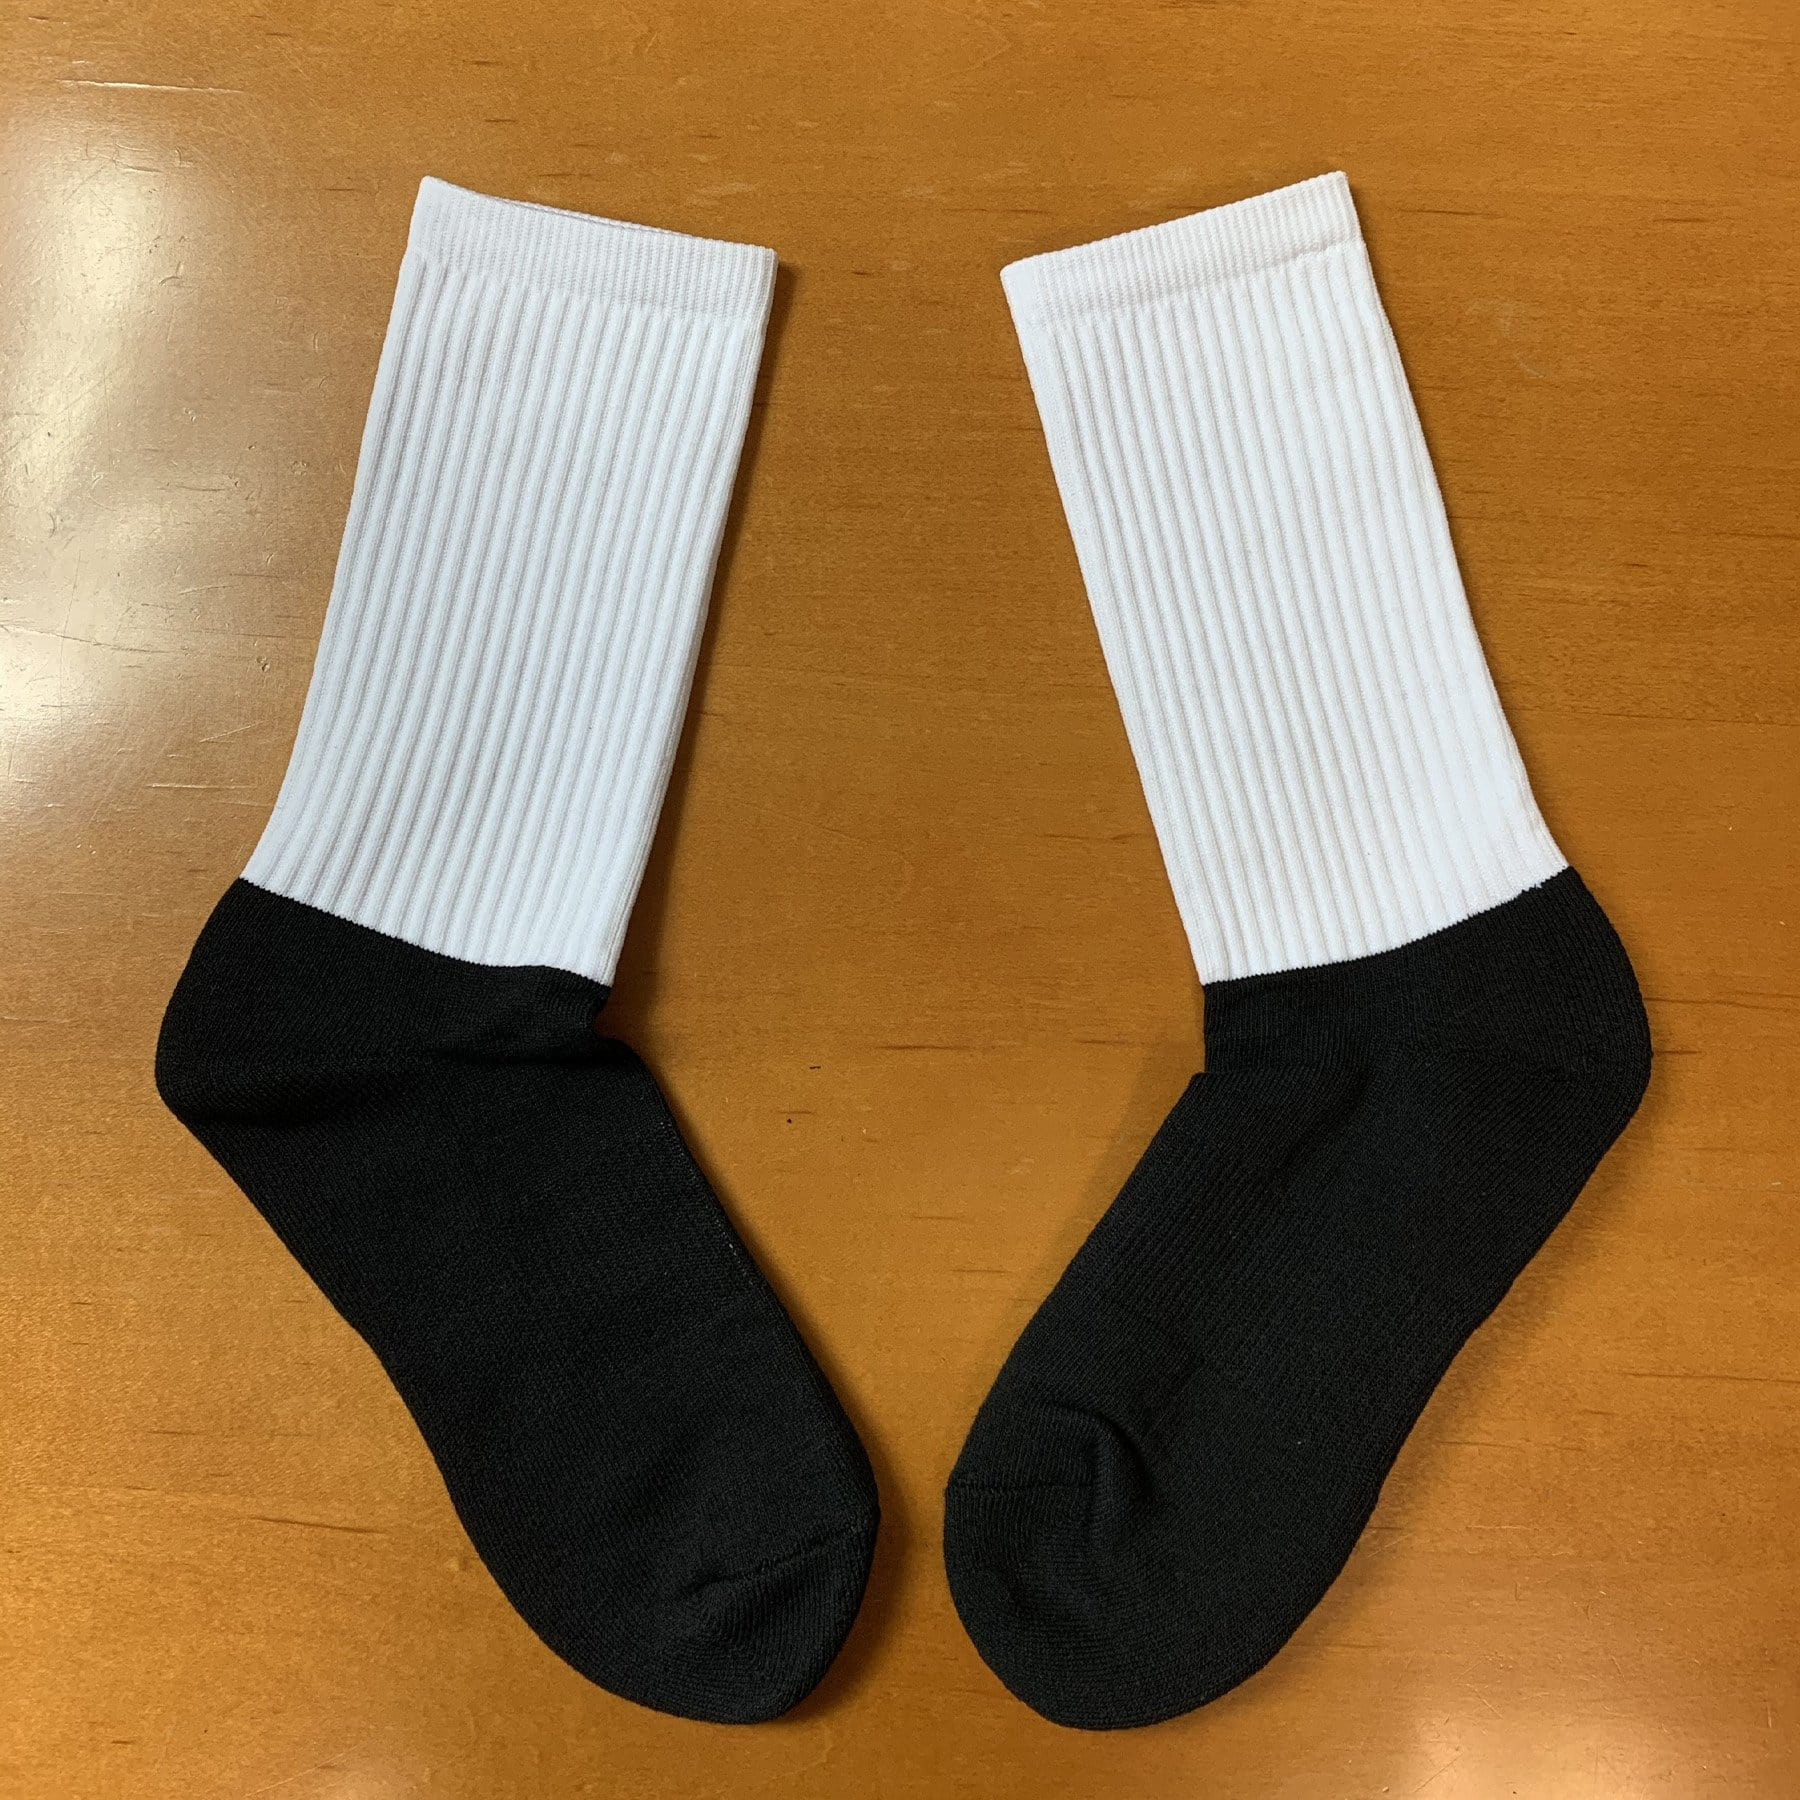 V1 Black foot White-top Athletic Socks- Discontinued Model - CLEARANCE